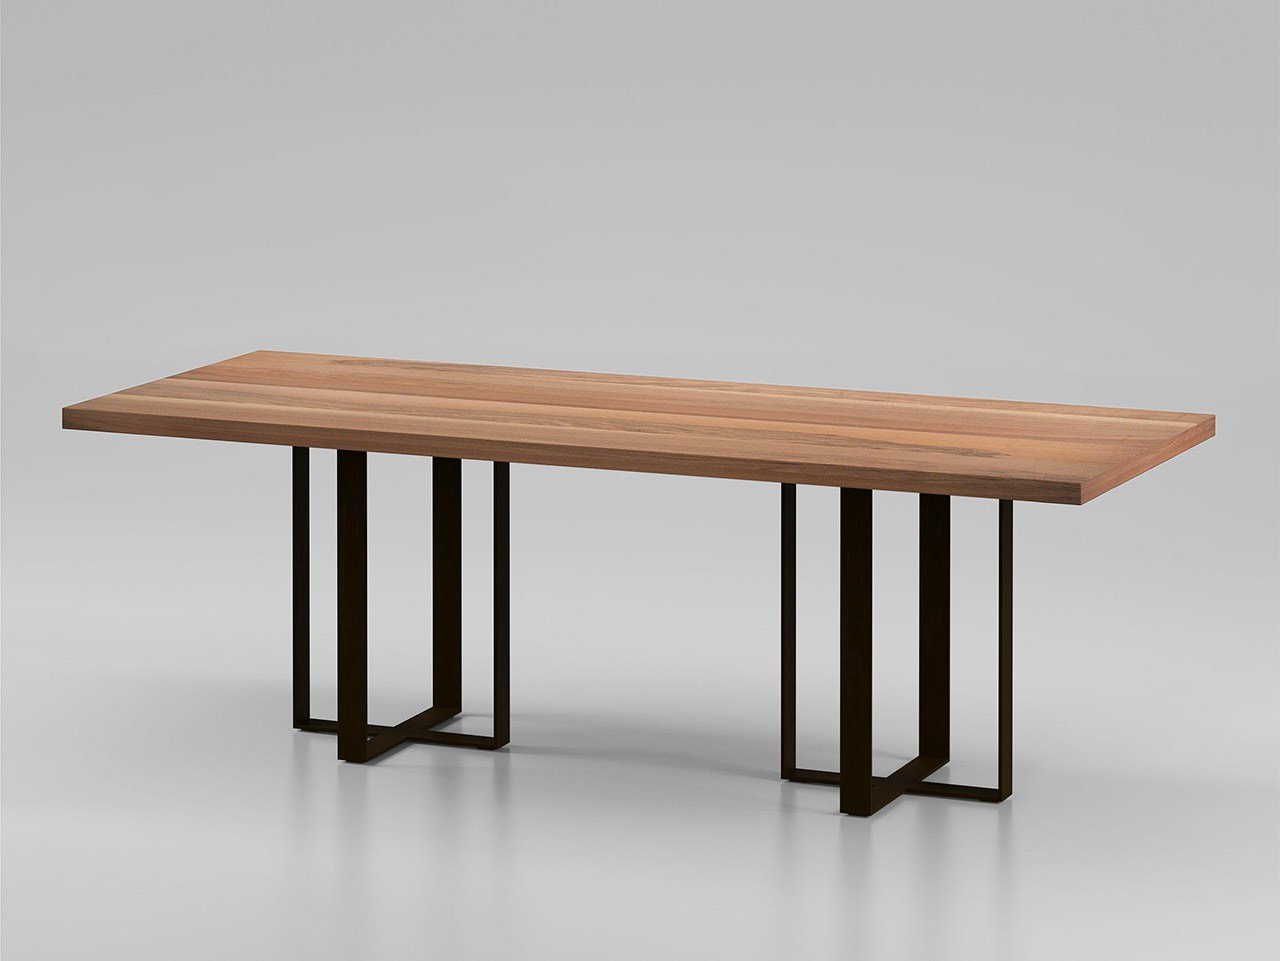 Rectangular Wooden Table Big Table By Alivar Design Roberto Lazzeroni